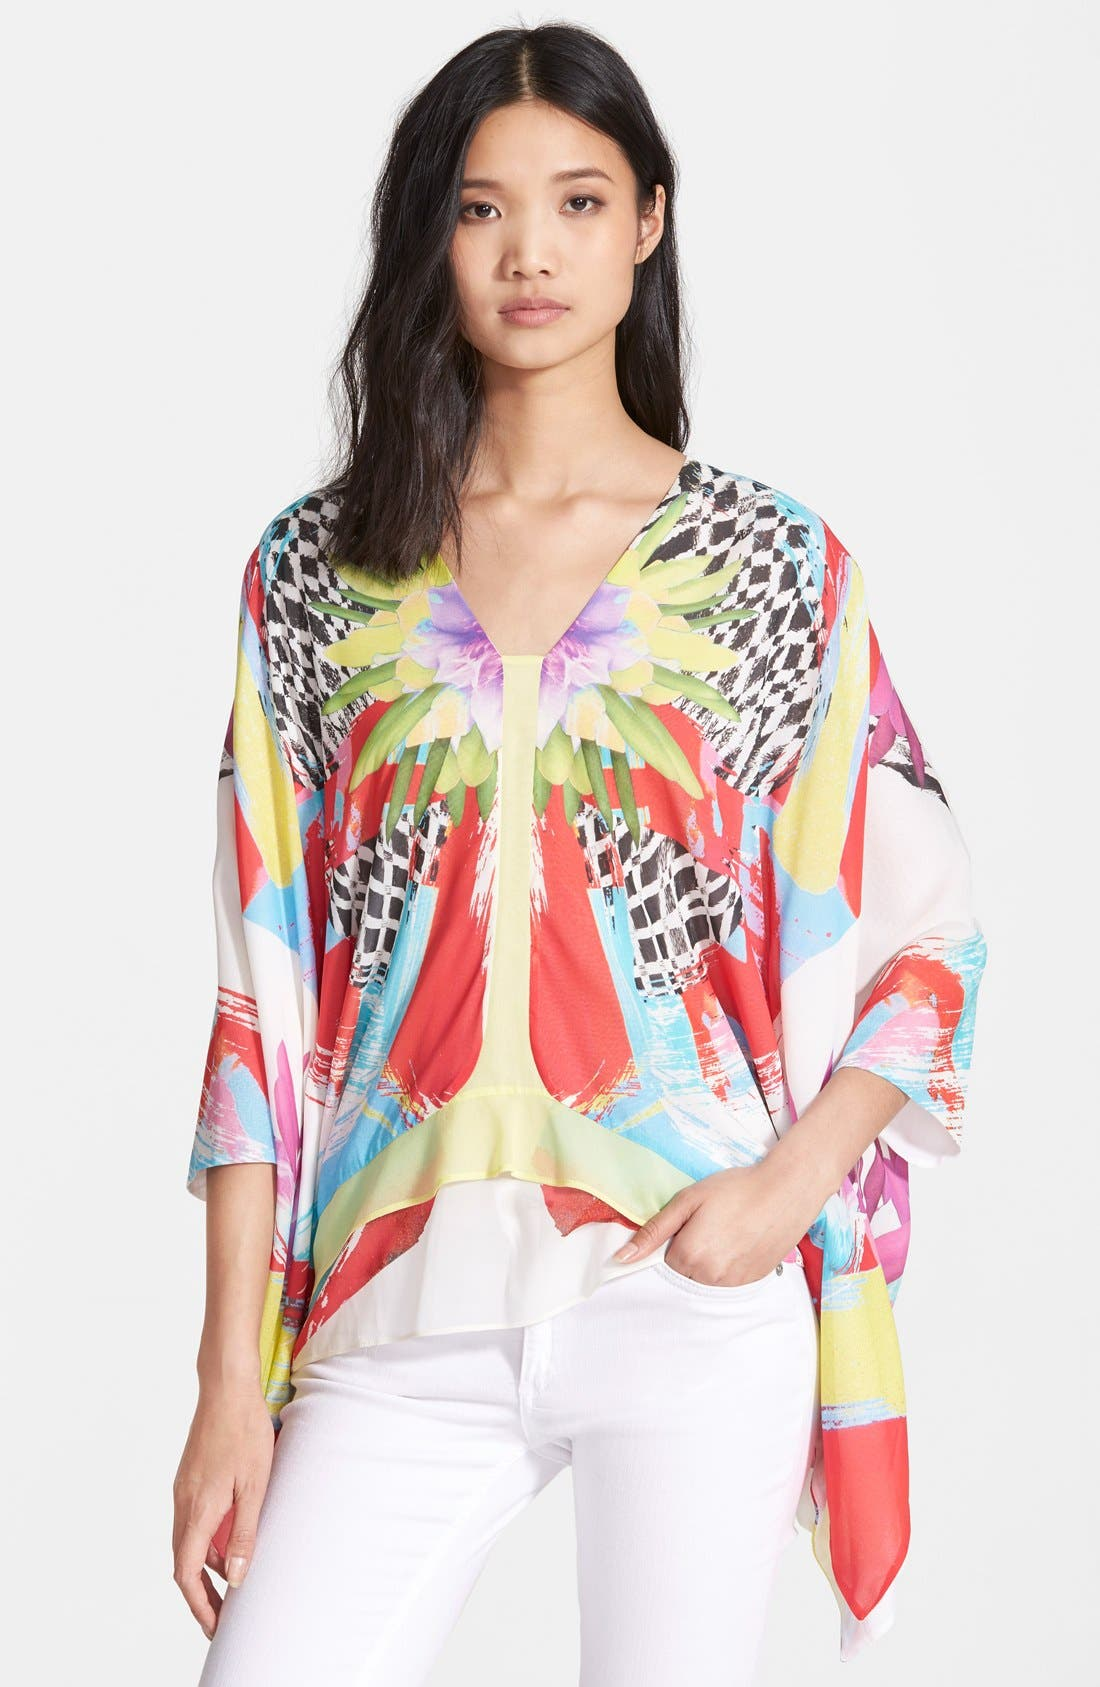 Alternate Image 1 Selected - Just Cavalli 'Kings Love' Print Stretch Silk Tunic Top